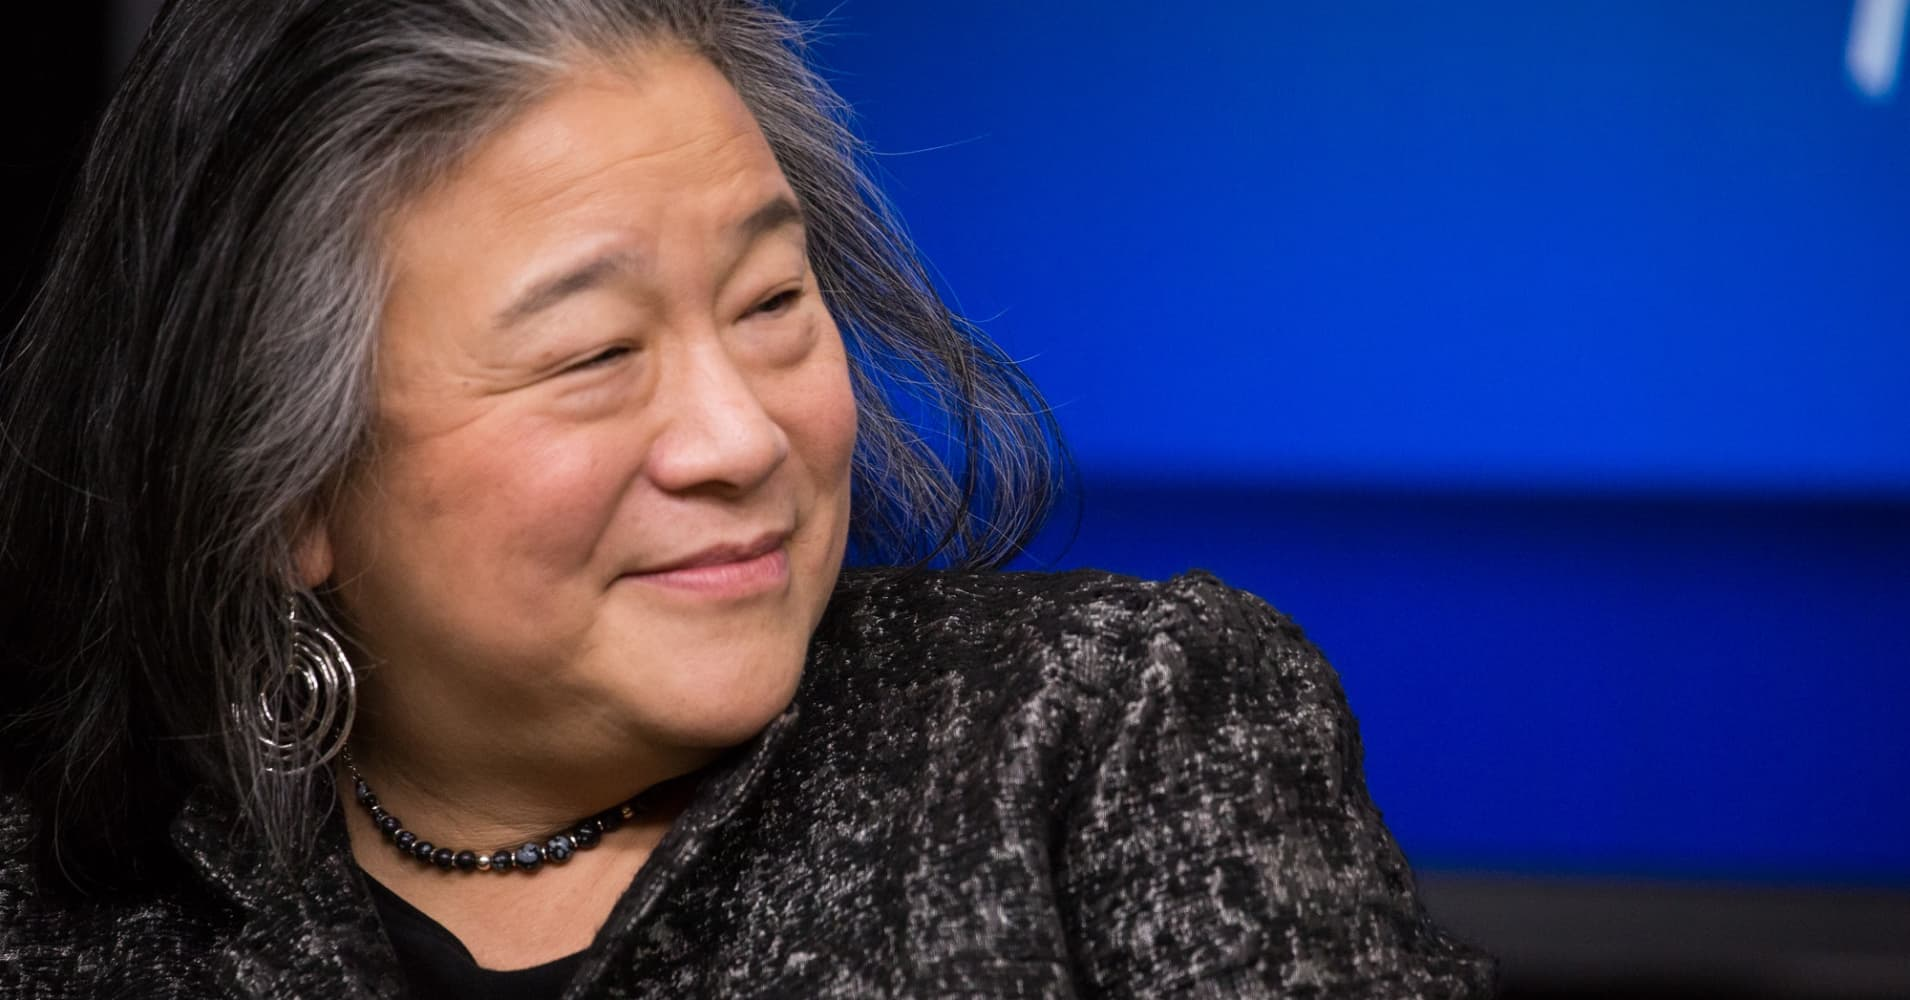 Tina Tchen, former Assistant to the President, former Chief of Staff to the First Lady and Director of the White House Council on Women and Girls and attorney behind the Time's Up legal defense fund.